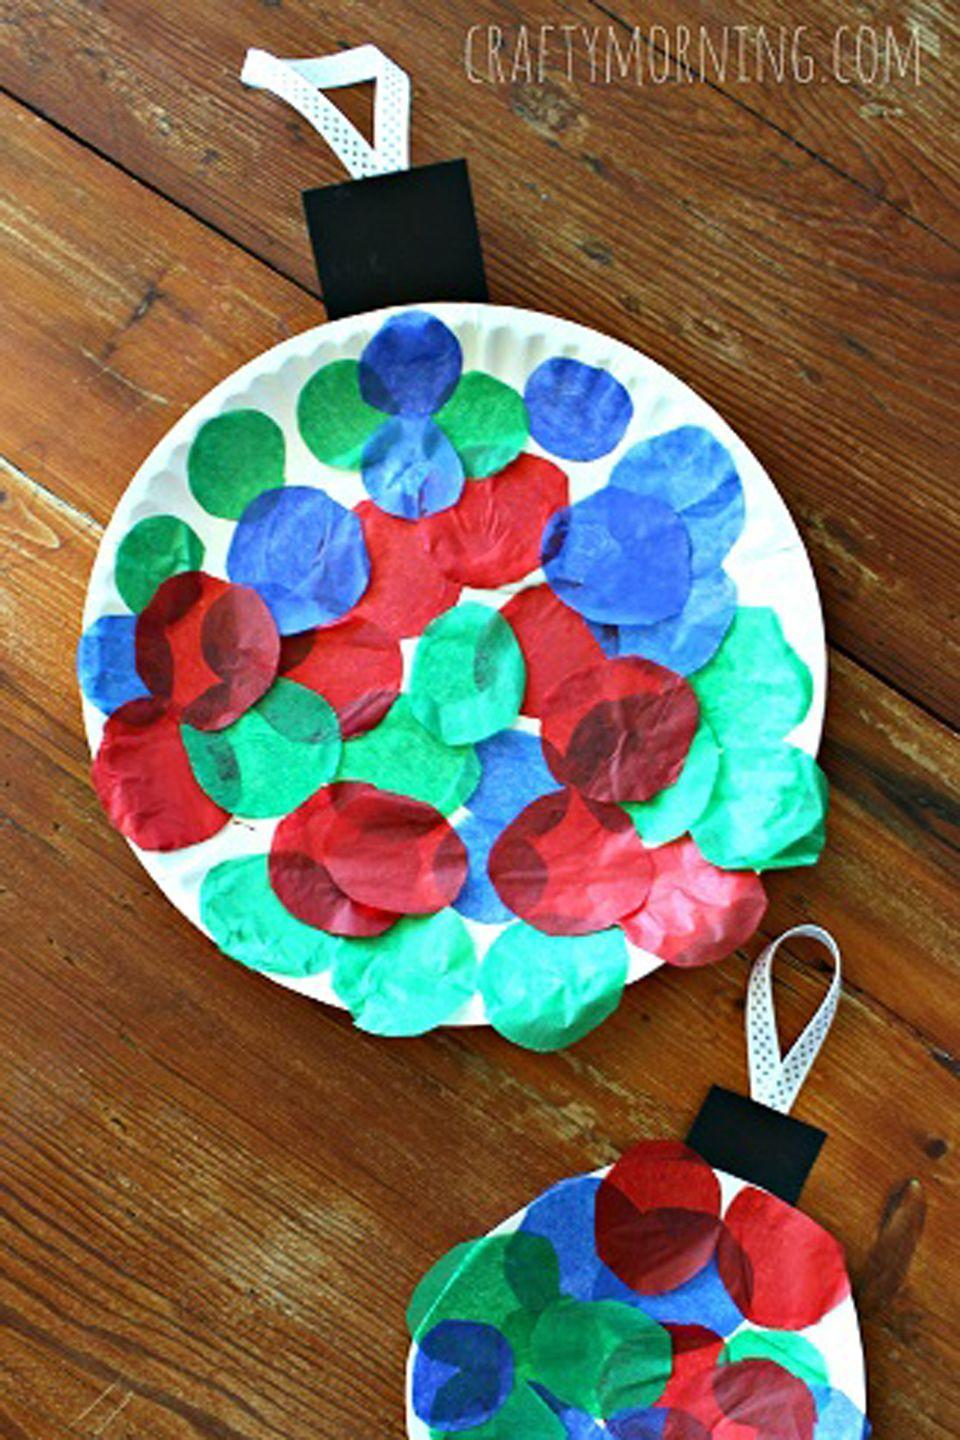 "<p><span class=""redactor-invisible-space"">Finally, a bauble that can't break!</span></p><p><strong>Get the tutorial at <a href=""https://www.craftymorning.com/paper-plate-christmas-ornament-craft-kids/"" rel=""nofollow noopener"" target=""_blank"" data-ylk=""slk:Crafty Morning"" class=""link rapid-noclick-resp"">Crafty Morning</a>.</strong></p>"